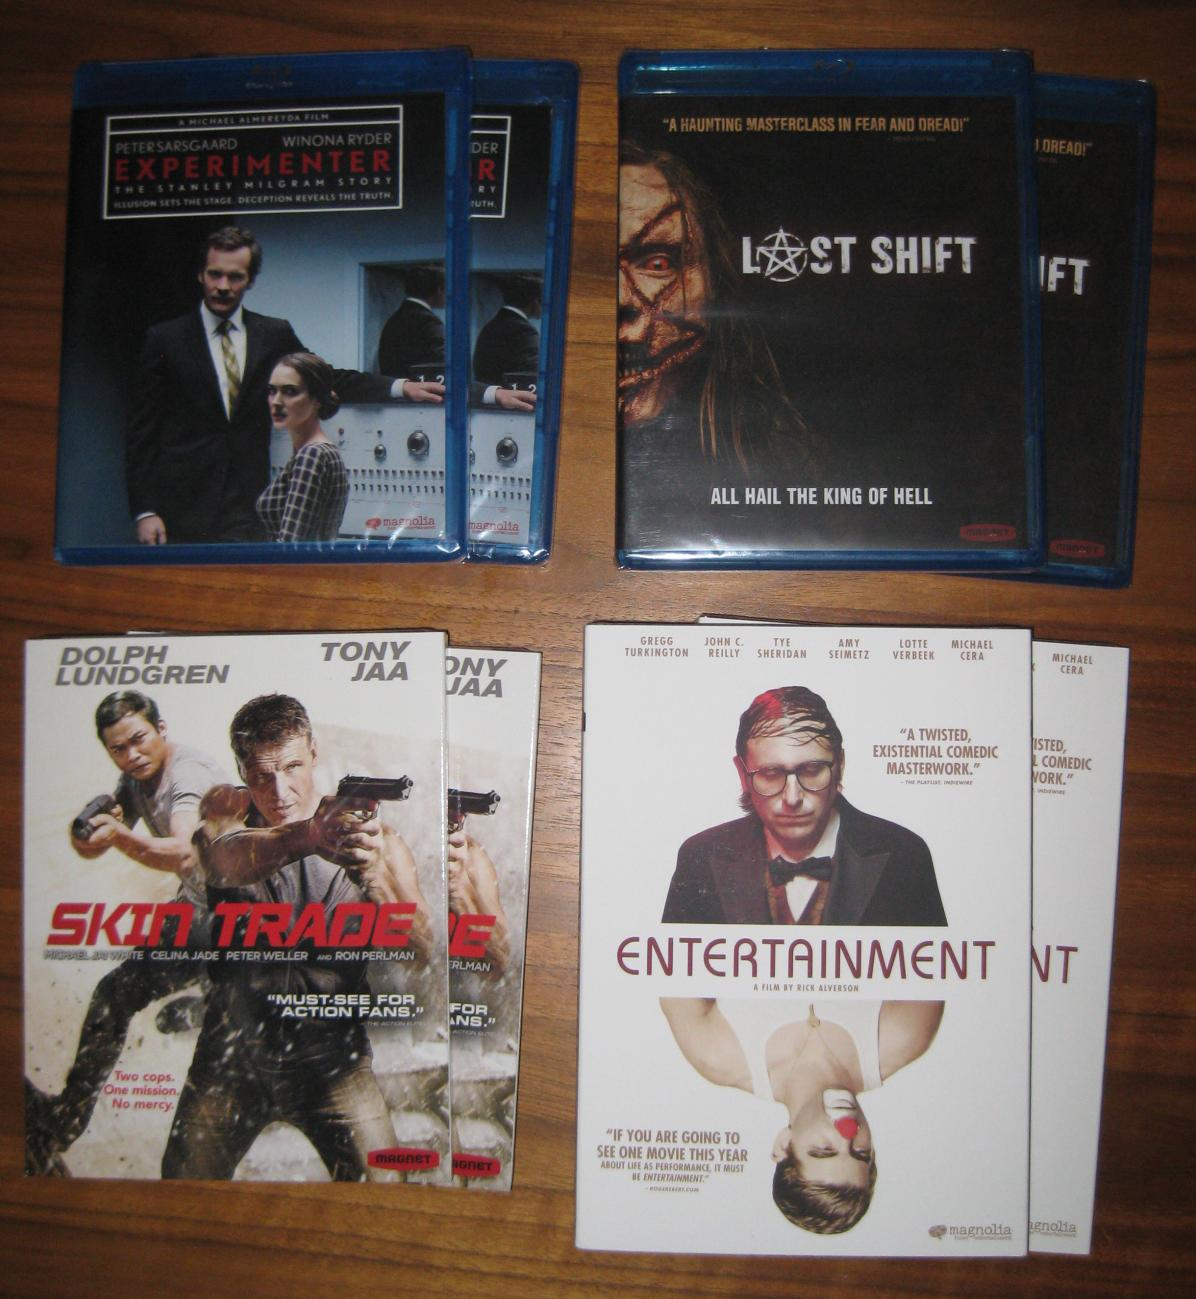 [GIVEAWAY] Magnolia/Magnet Giveaway Extravaganza! Win Copies of 'Experimenter', 'Last Shift', 'Skin Trade' & 'Entertainment'; Each Now Available From Magnolia & Magnet 21